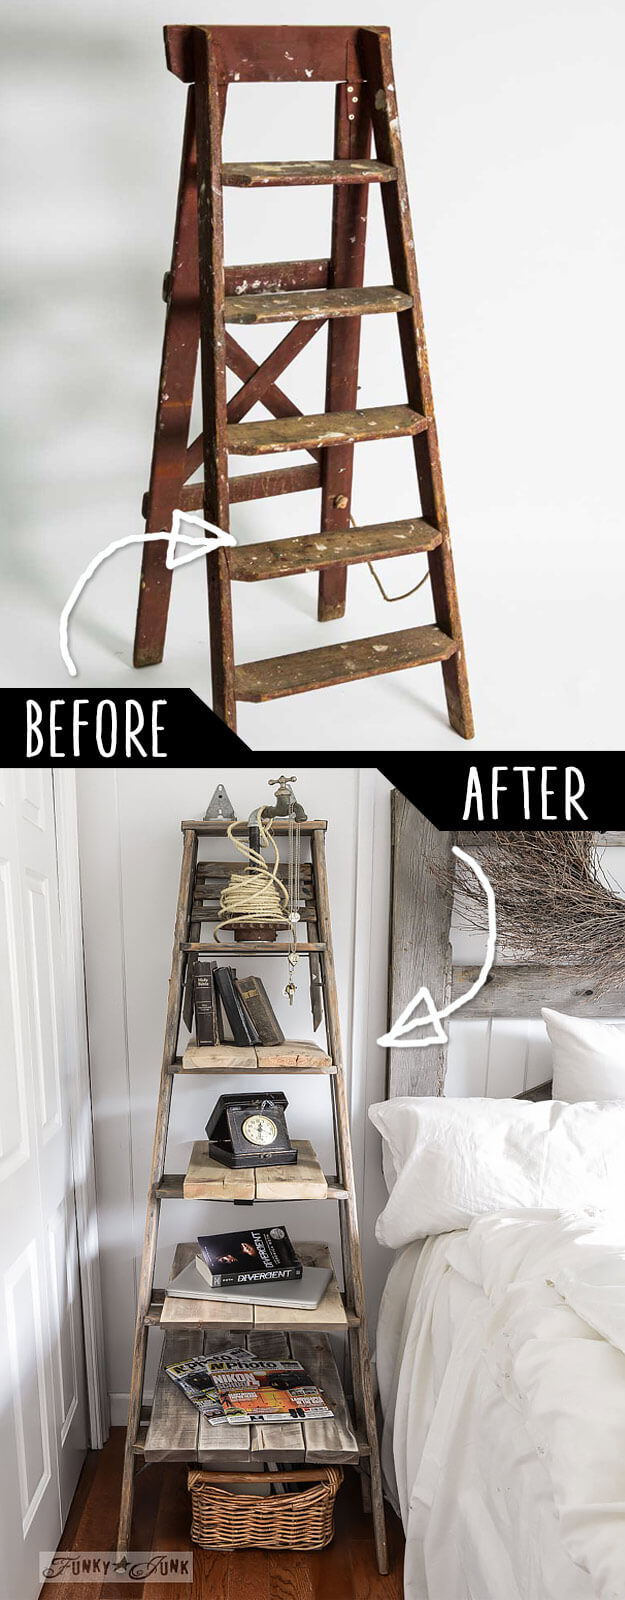 Best 34 Best Diy Vintage Decor Ideas And Projects For 2019 This Month